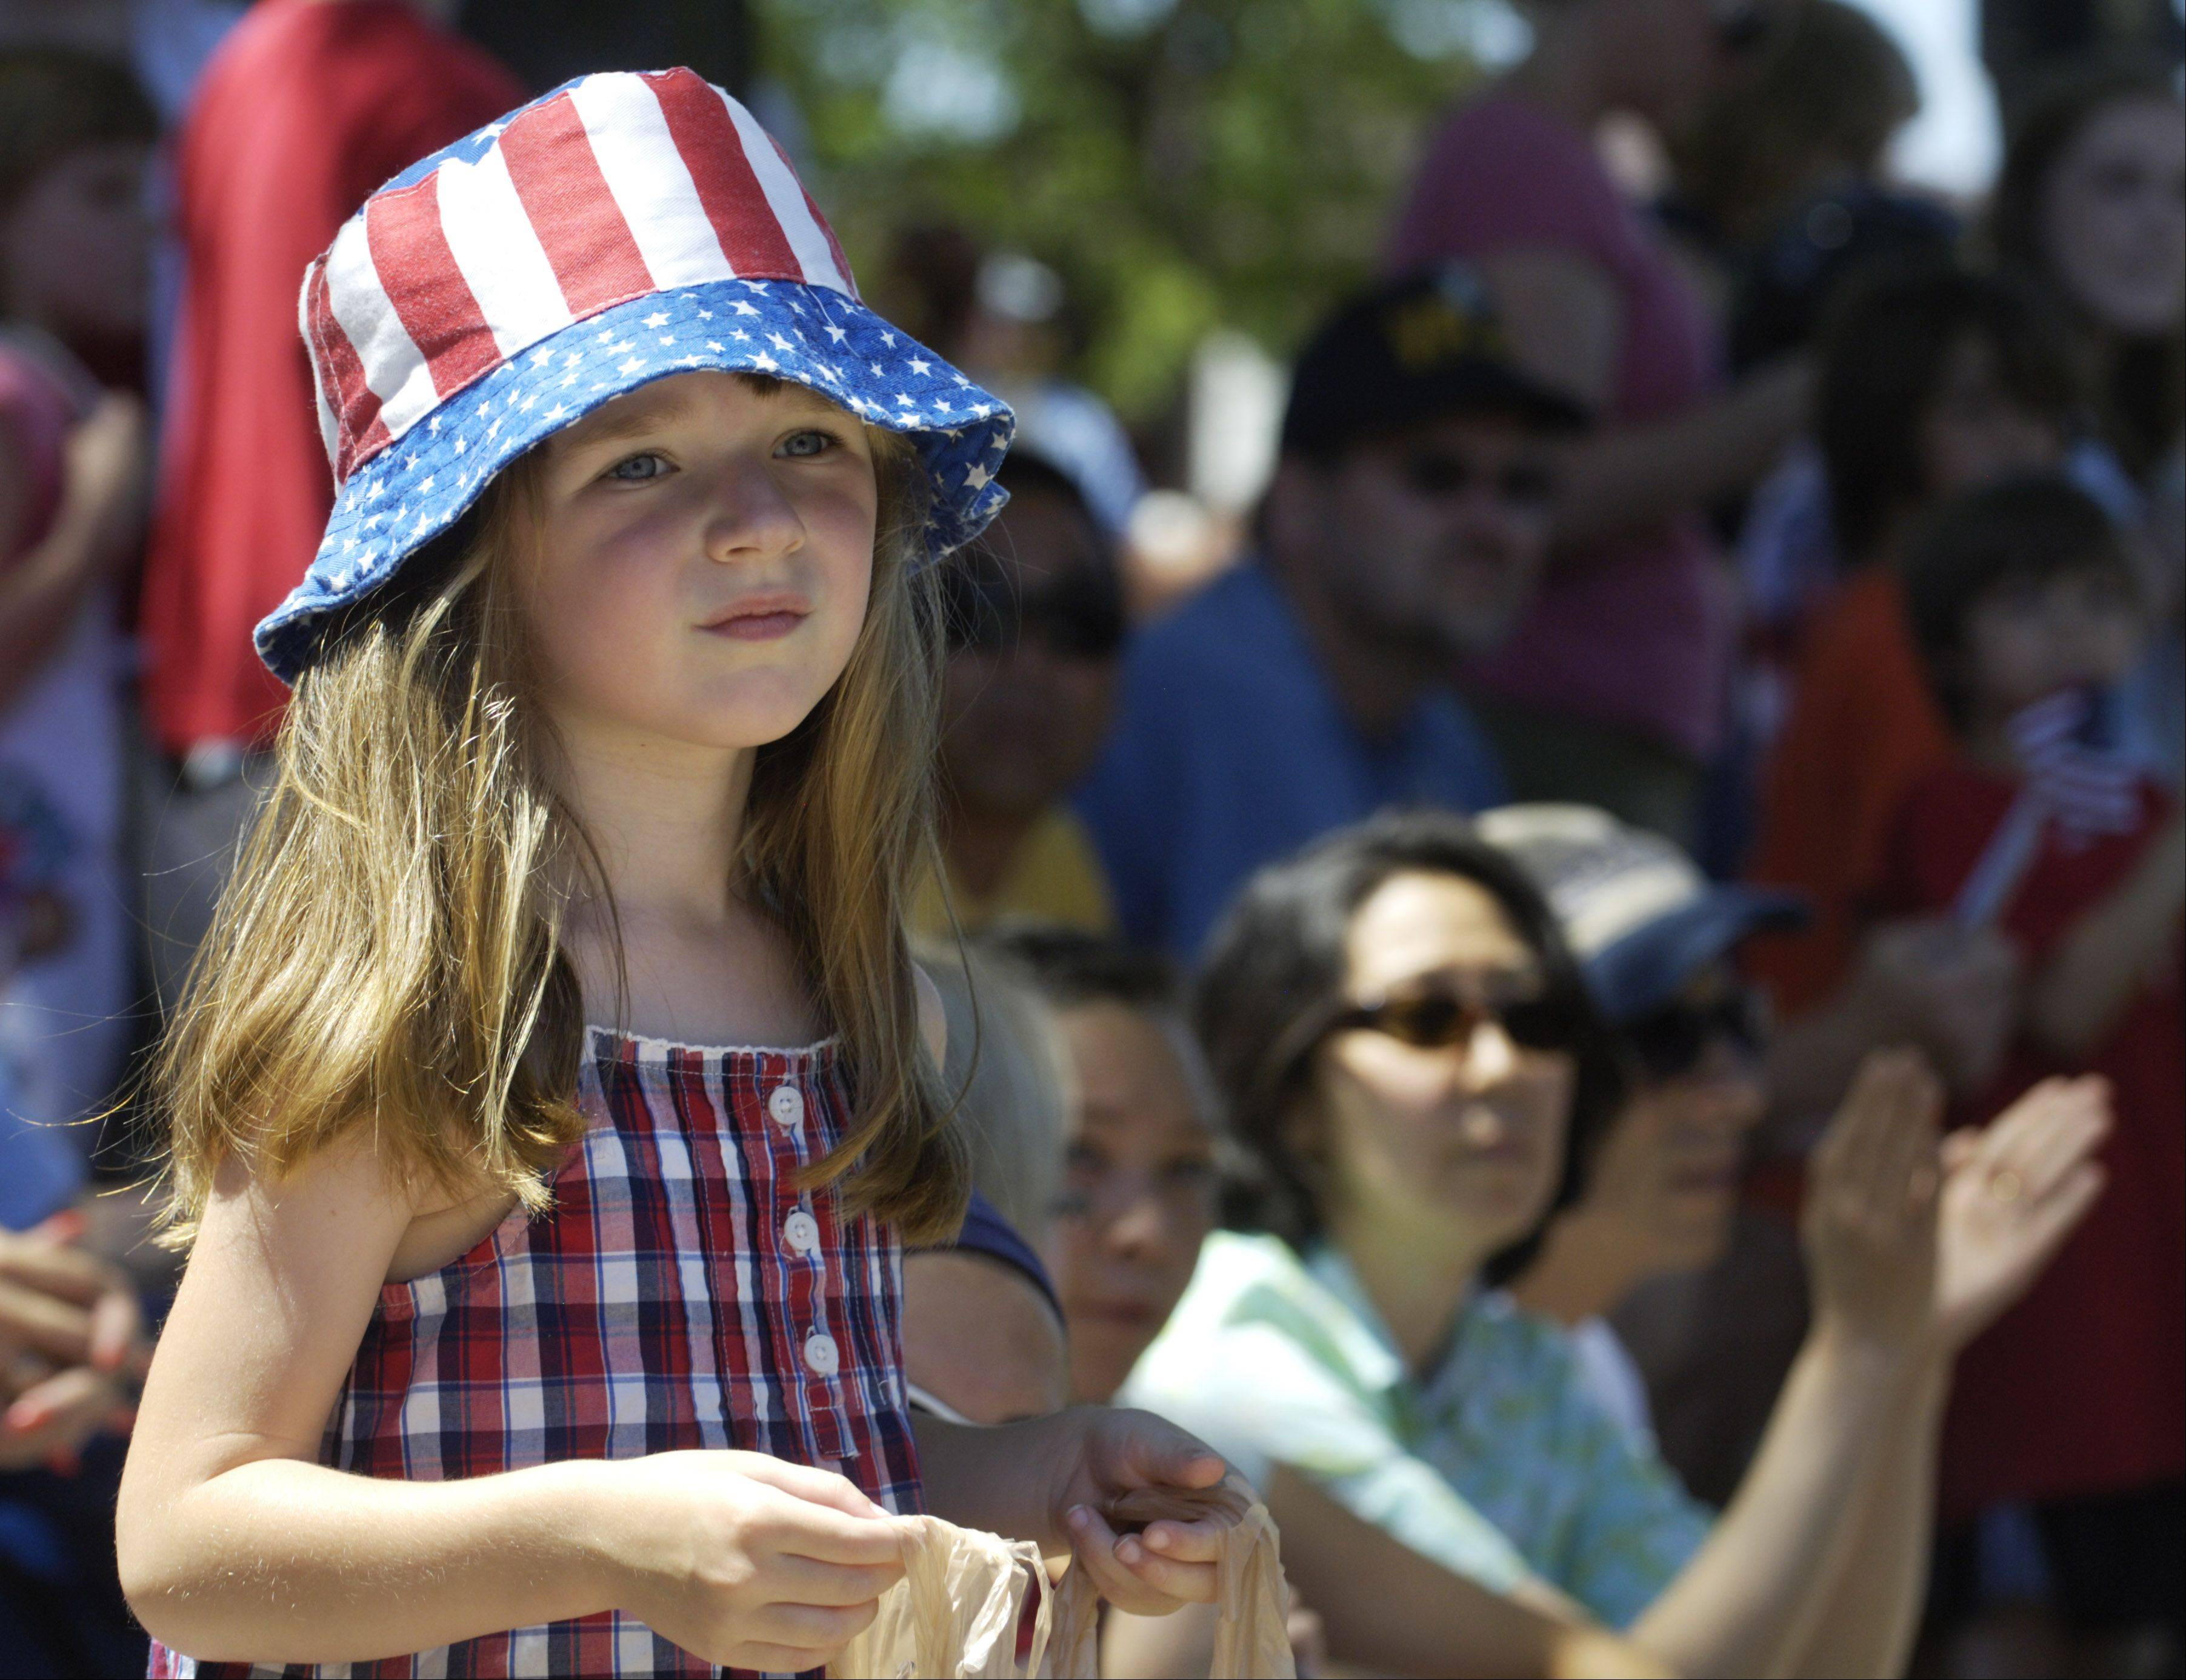 Amanda Mattson, 5, of Mount Prospect holds her candy bag while watching the Mount Prospect Fourth of July parade Monday.